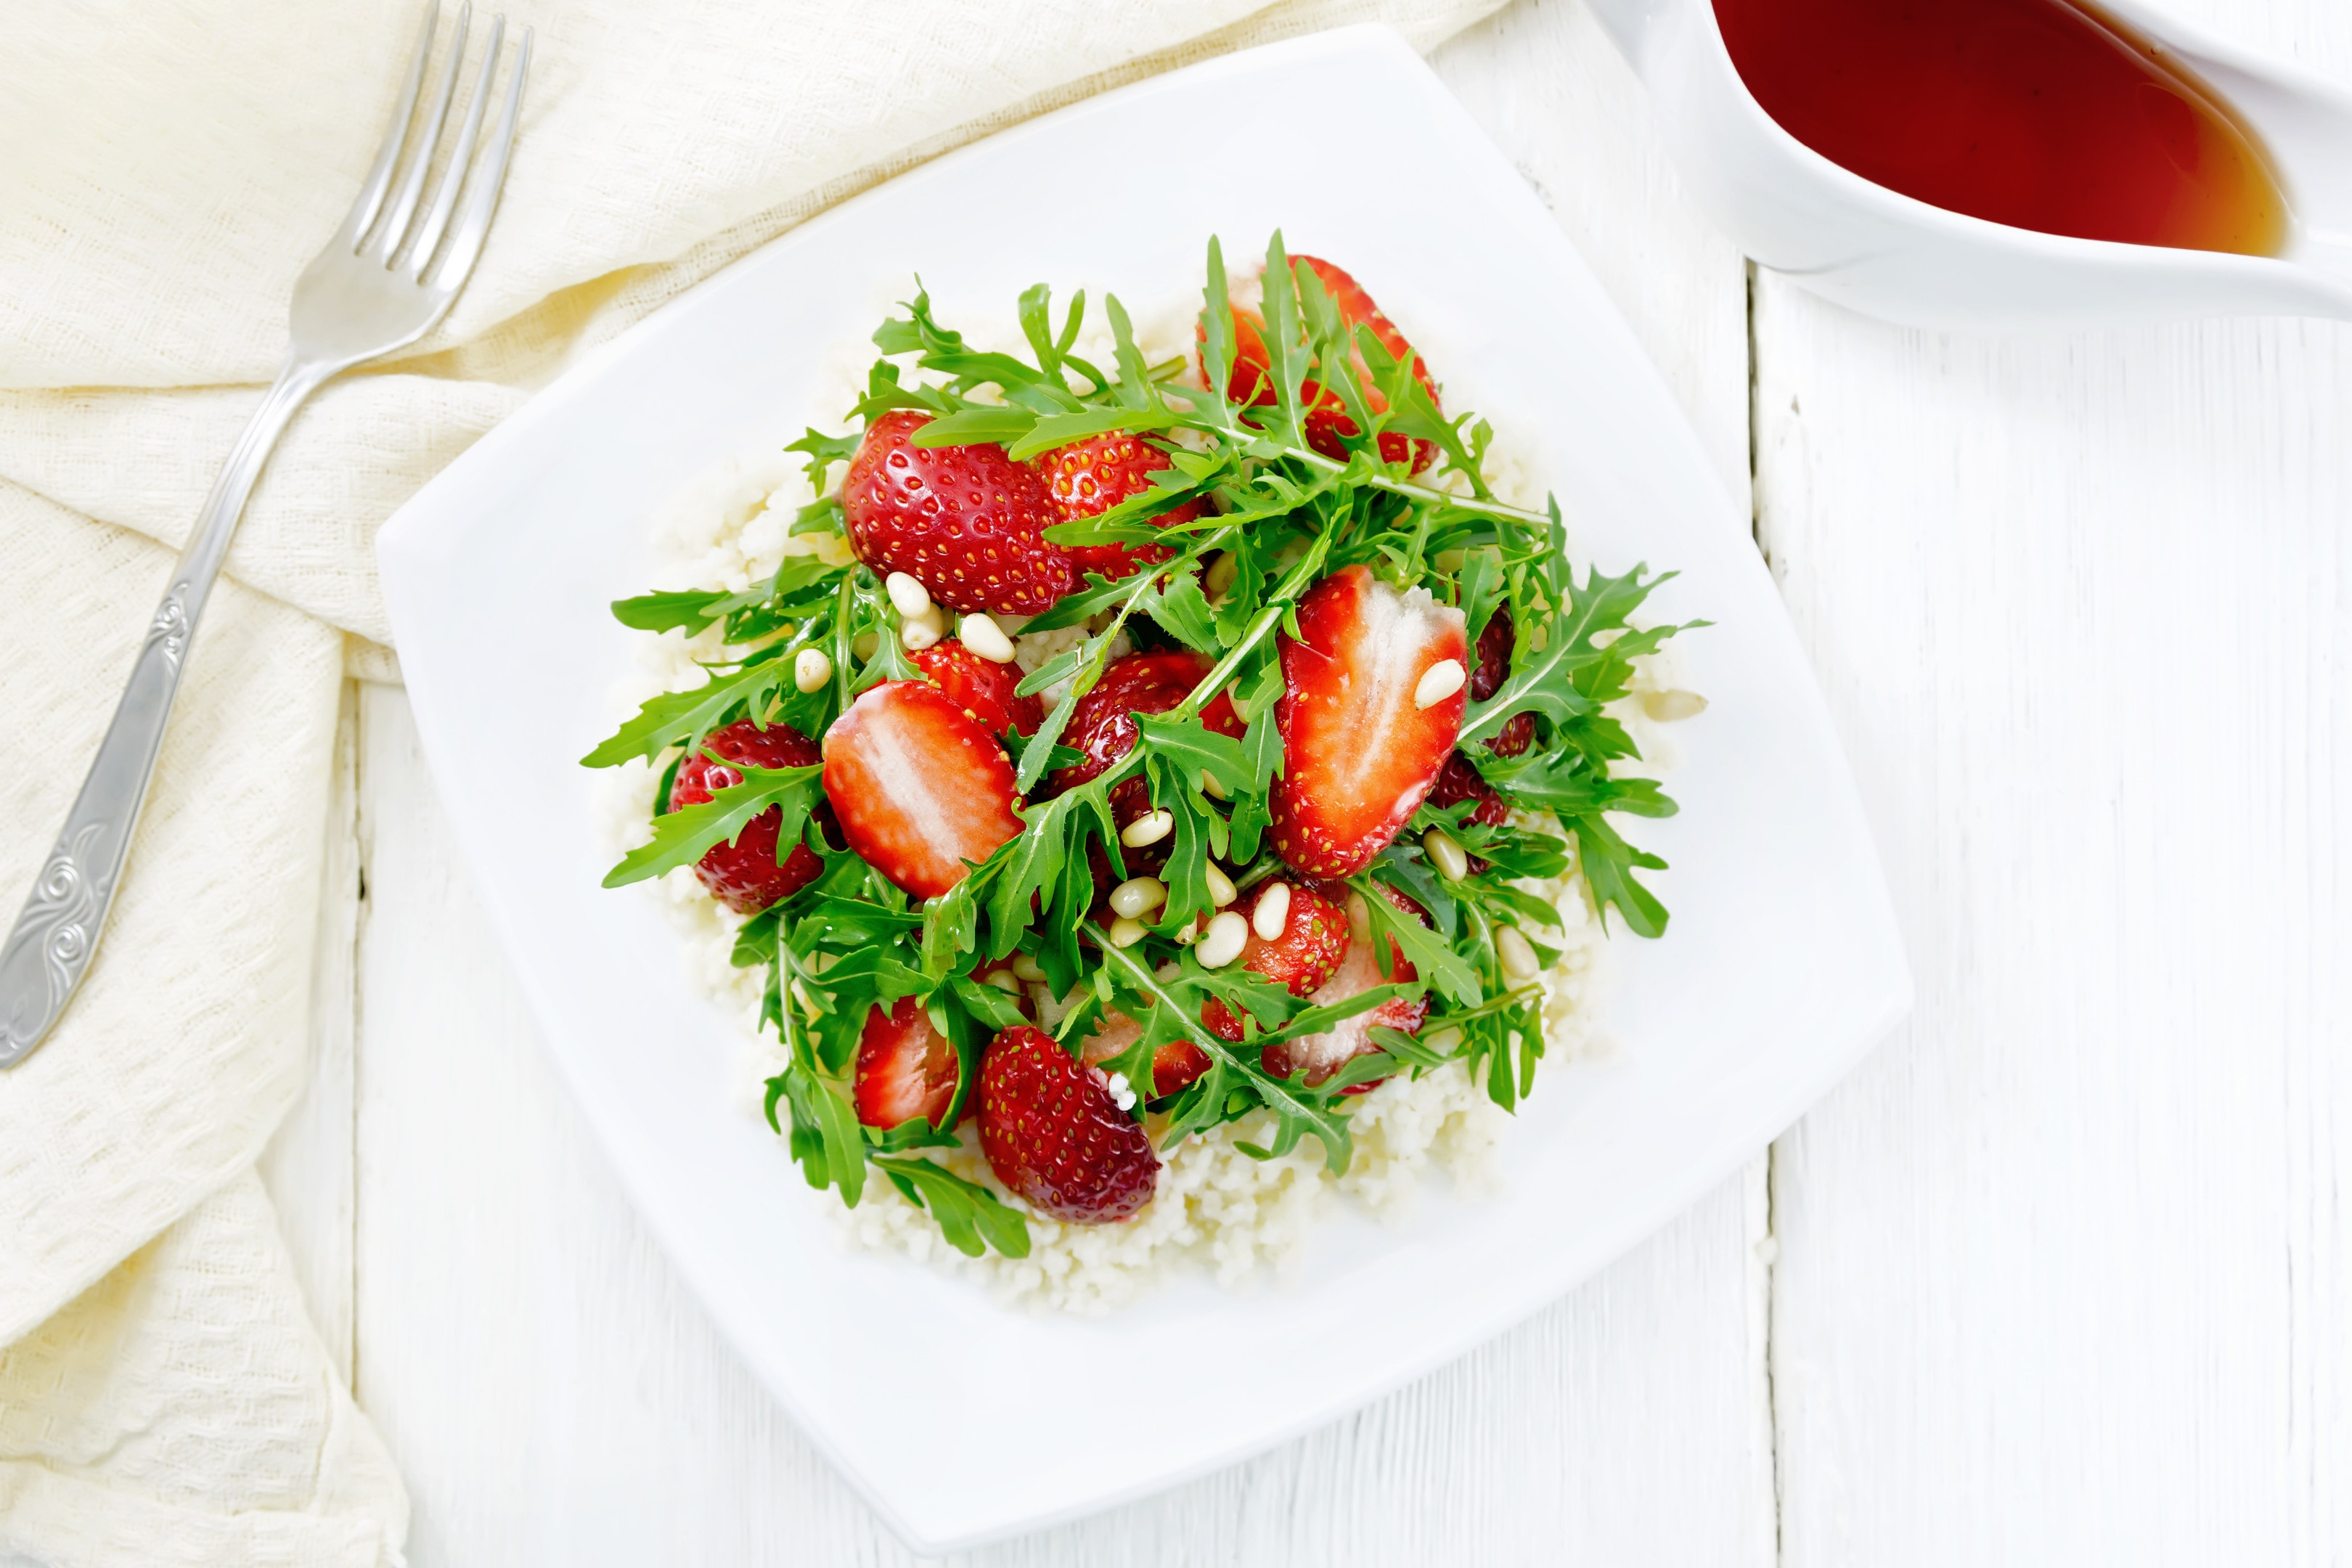 Strawberry couscous with arugula salad dressed with fruit vinegar